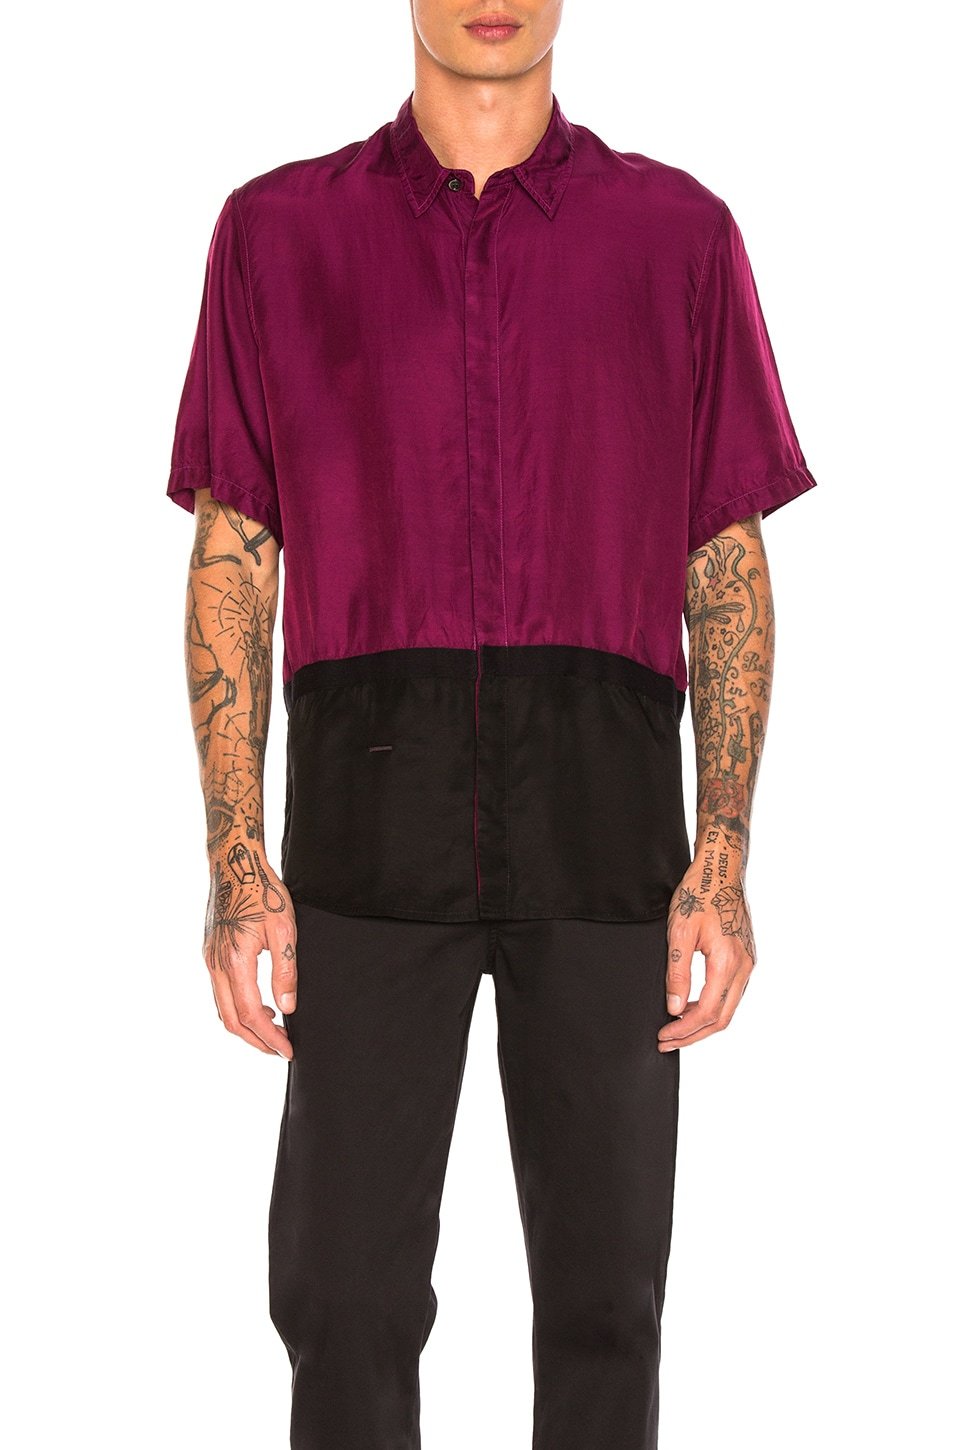 Photo of Two Toned Taped Shirt by Robert Geller men clothes